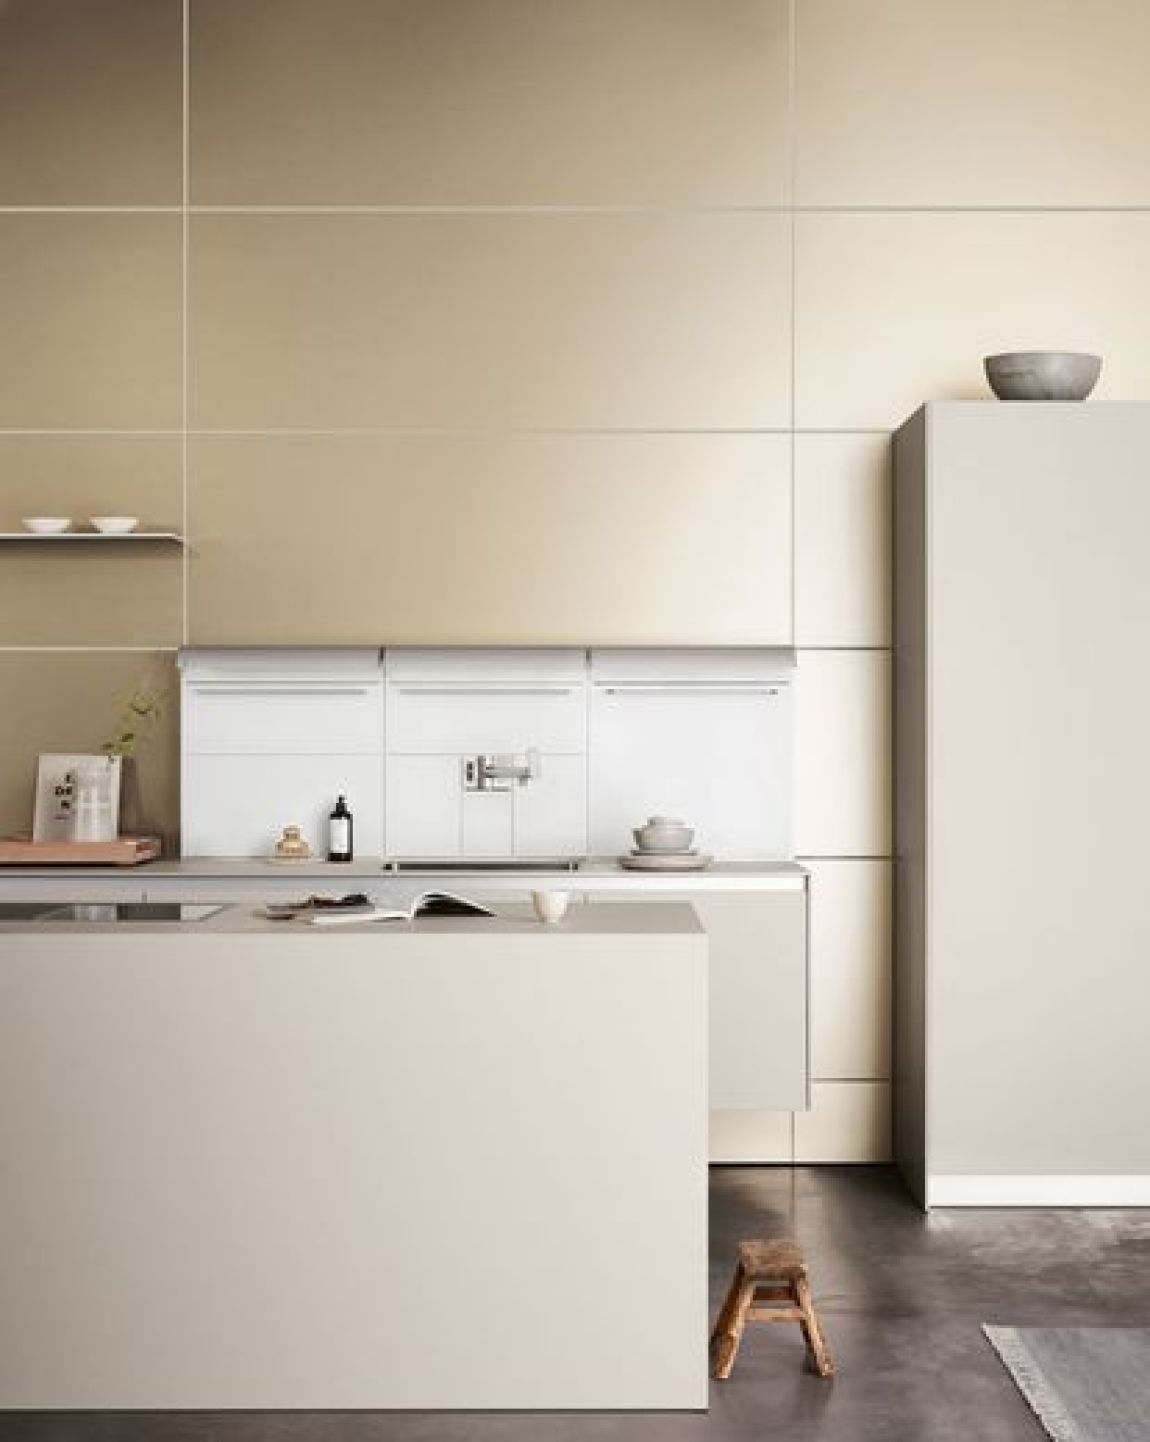 An image of the Bulthaup b3 kitchen system.